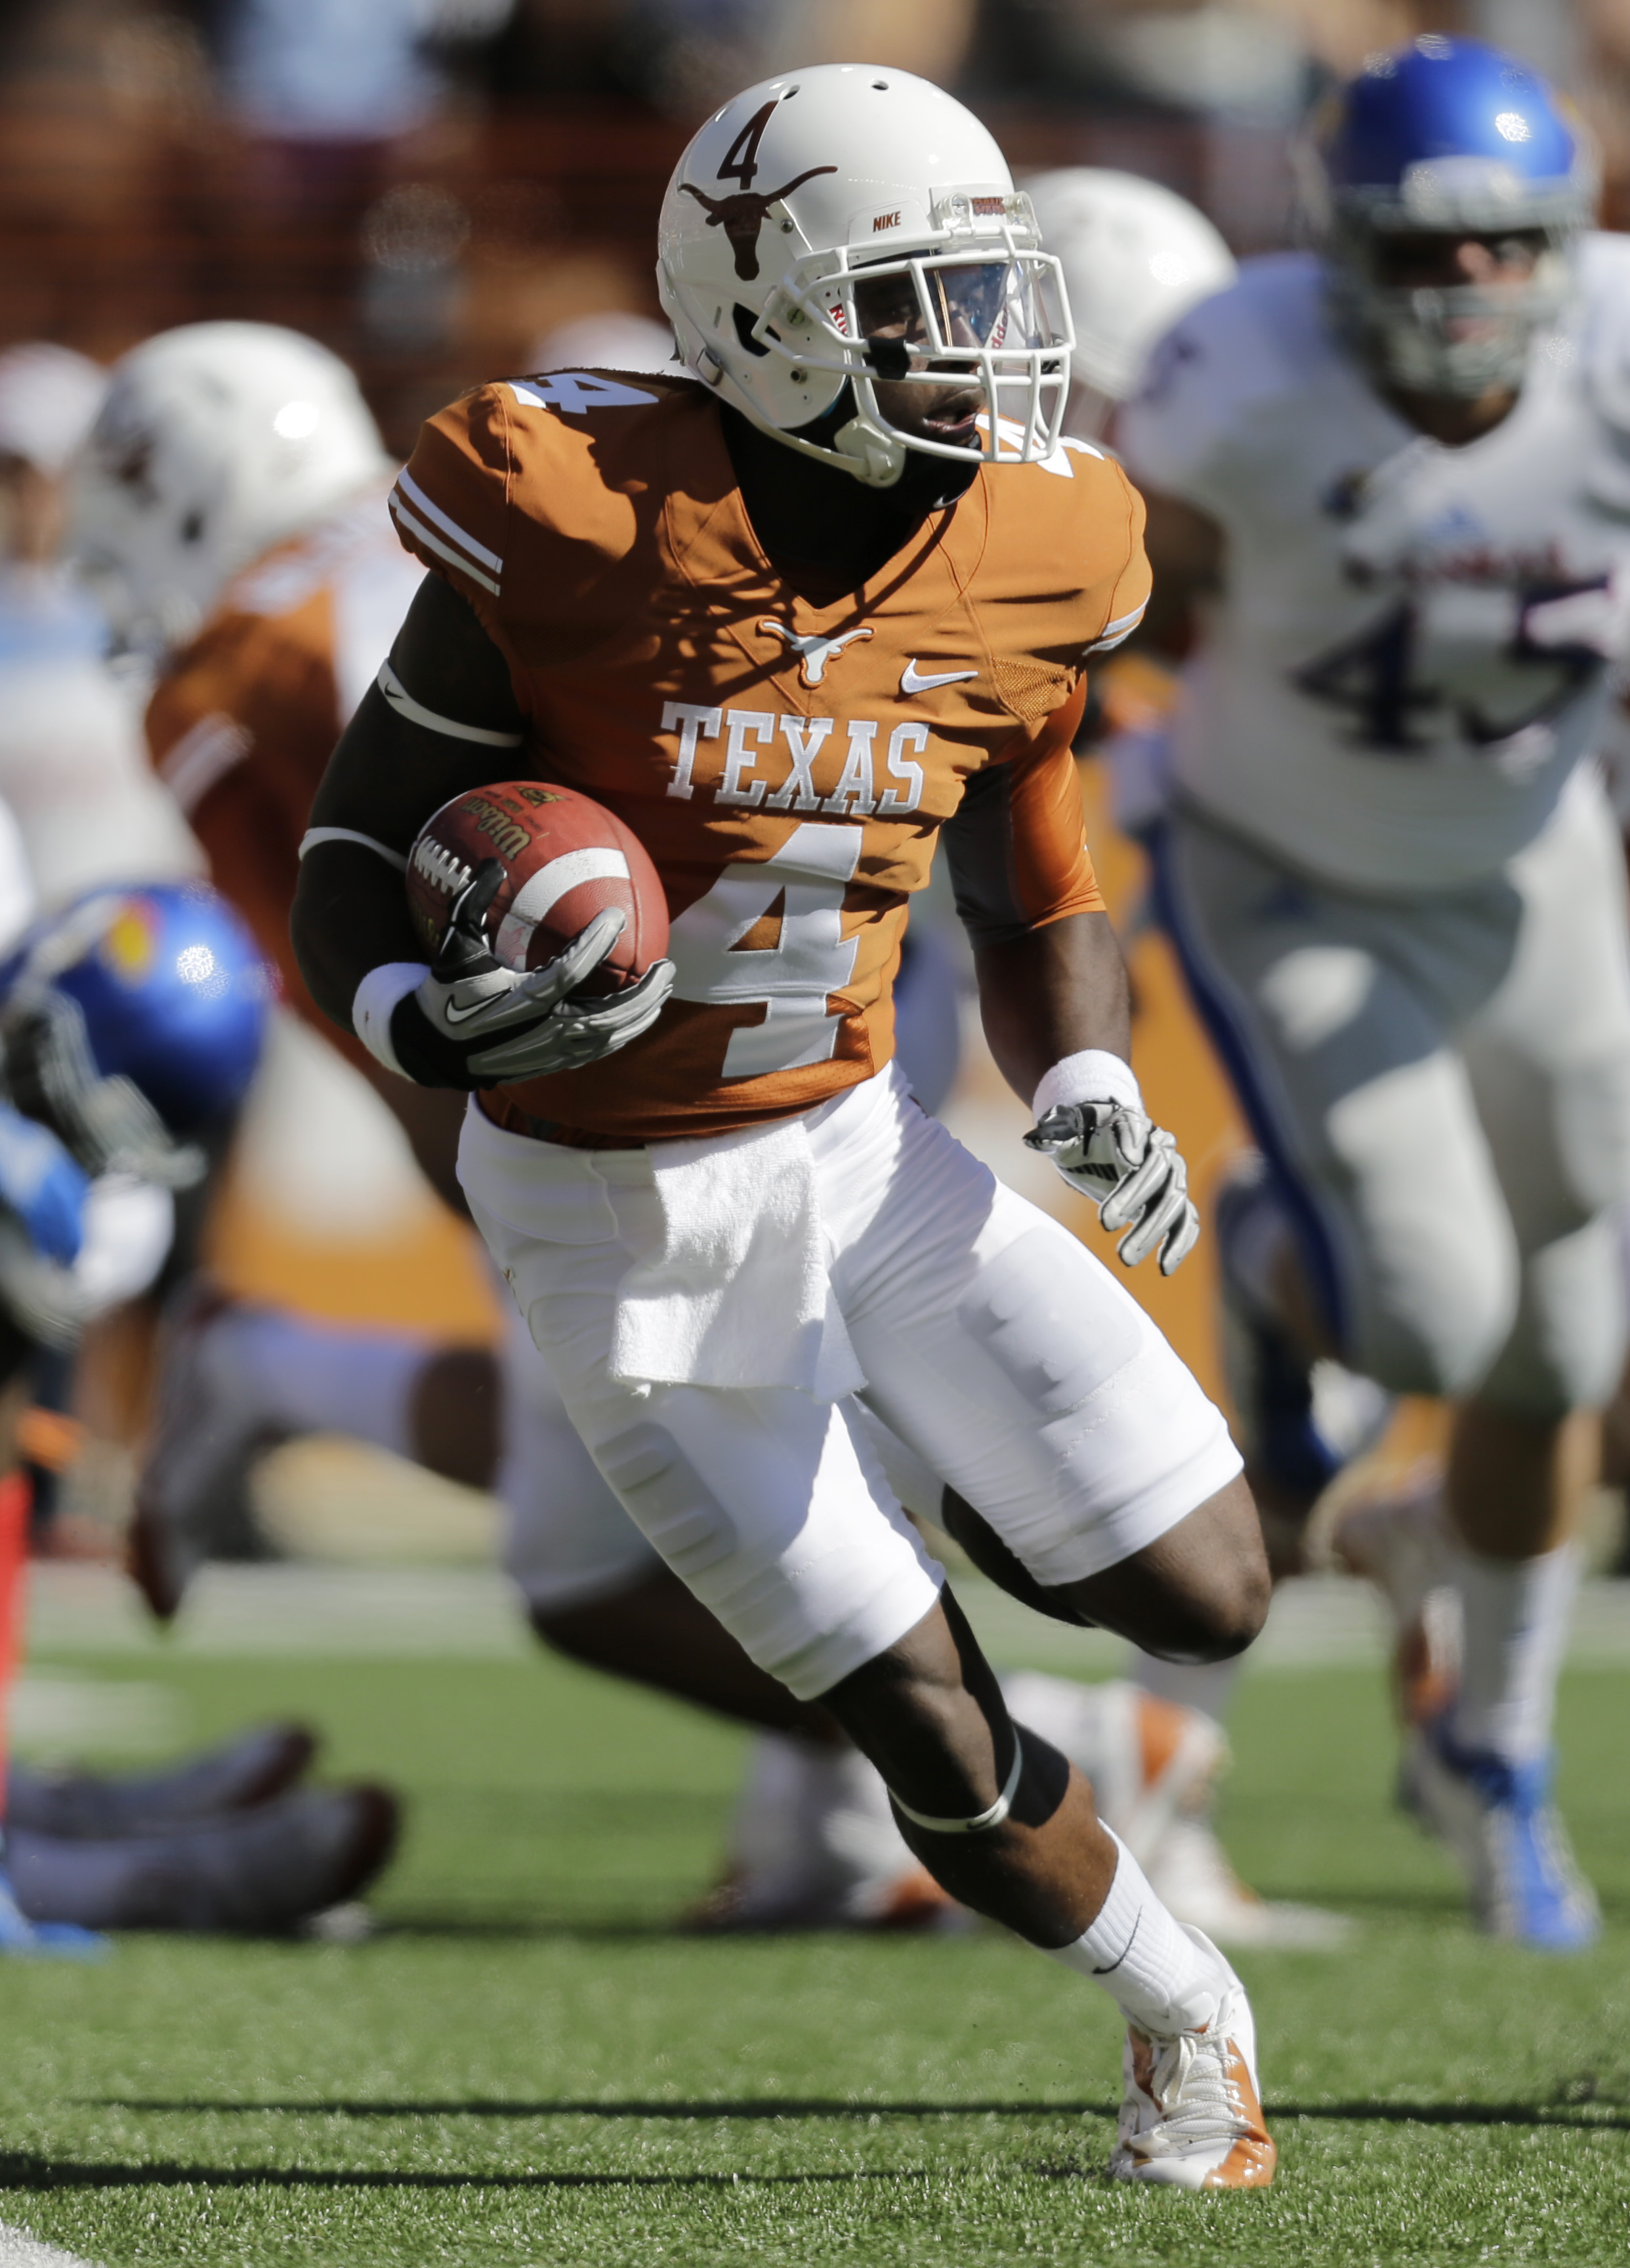 FILE-In this Nov. 2, 2013, file photo, Texas' Daje Johnson returns a kickoff during the first half of an NCAA college football game in Austin, Texas. For three years, Johnson has been the great hope and the great disappointment for Texas. The playmaker wi